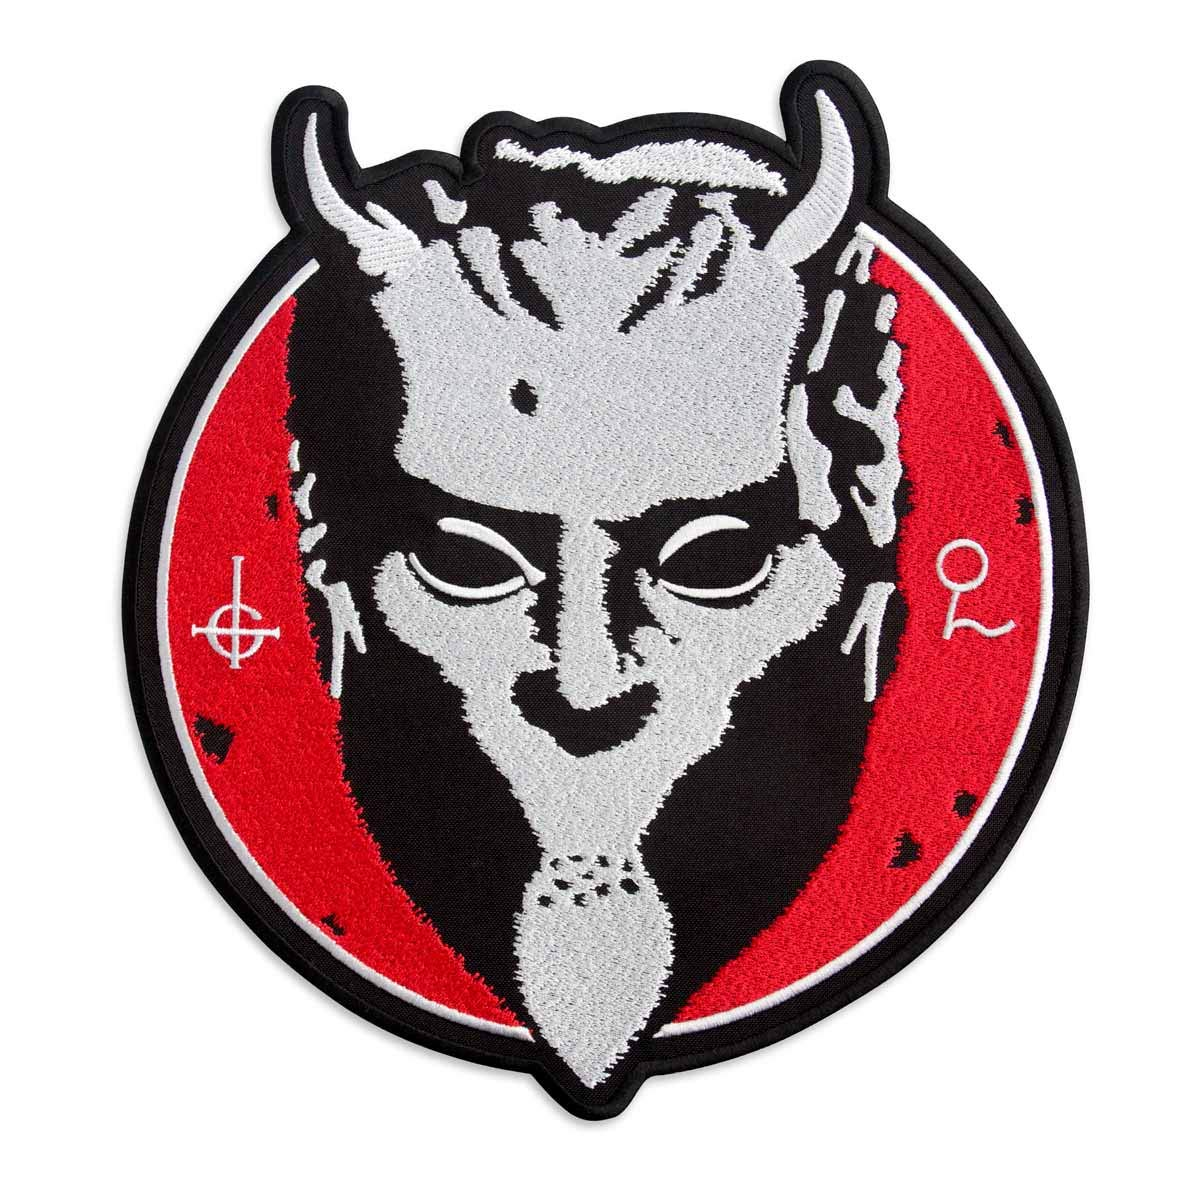 Ghost BC Nameless Ghouls Mask on a Red Background Heavy Metal Doom Hard Rock Band Embroidered Patch Iron On (13.4'' x 14.6'') by Embrosoft